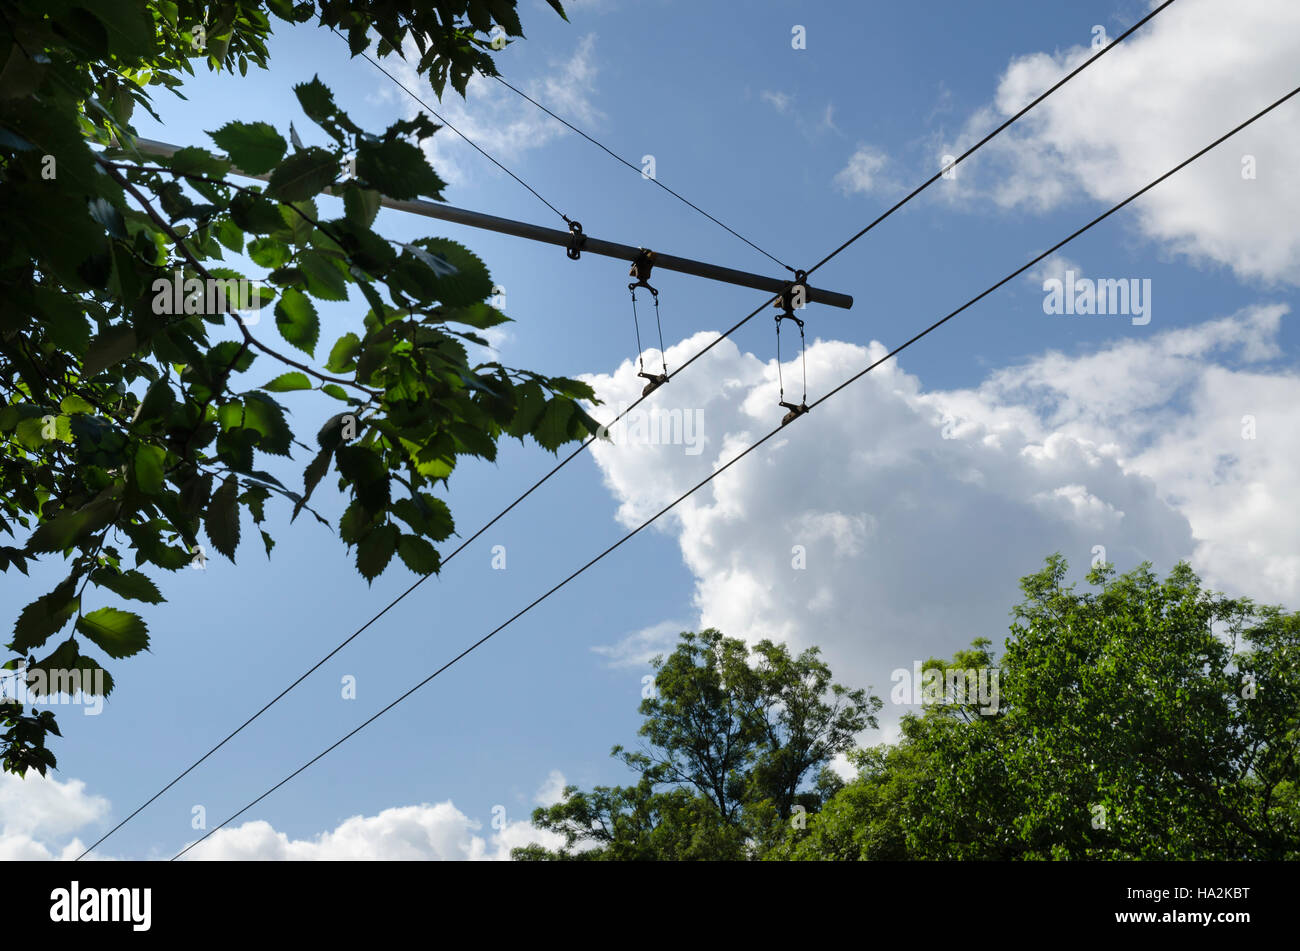 Trolley Bus Electric Stock Photos & Trolley Bus Electric Stock ...